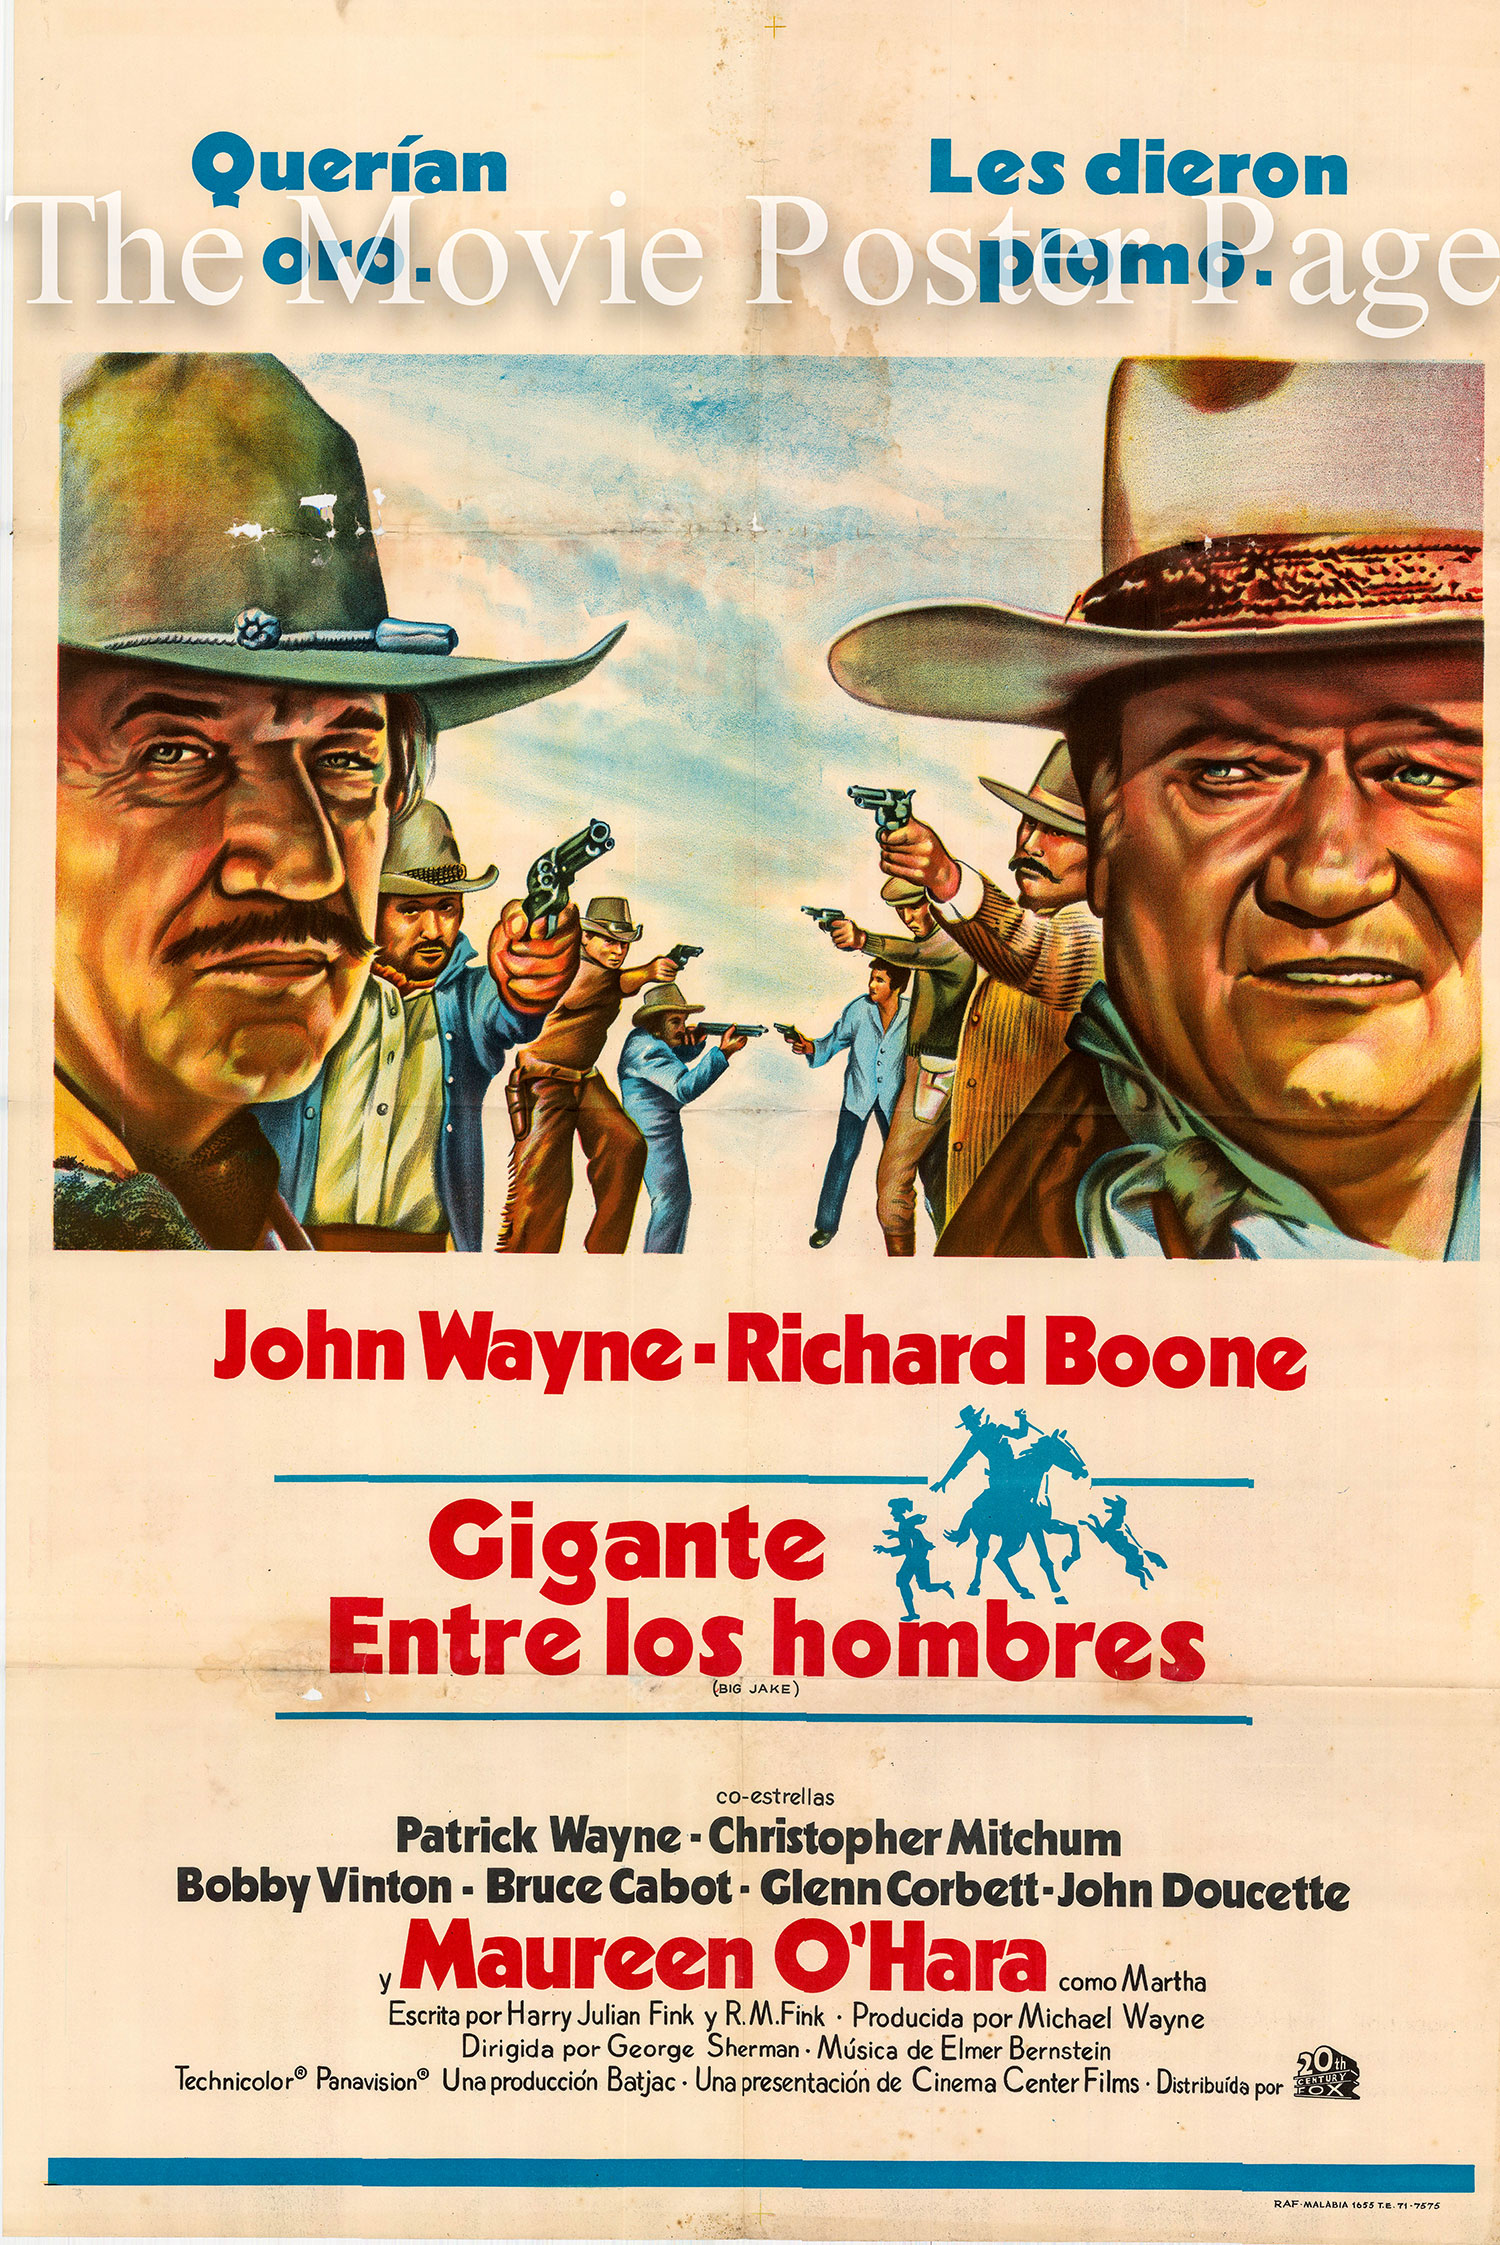 Pictured is an Argentine one-sheet poster for the 1971 George Sherman and John Wayne film Big Jake starring John Wayne as Jacob McCandles.